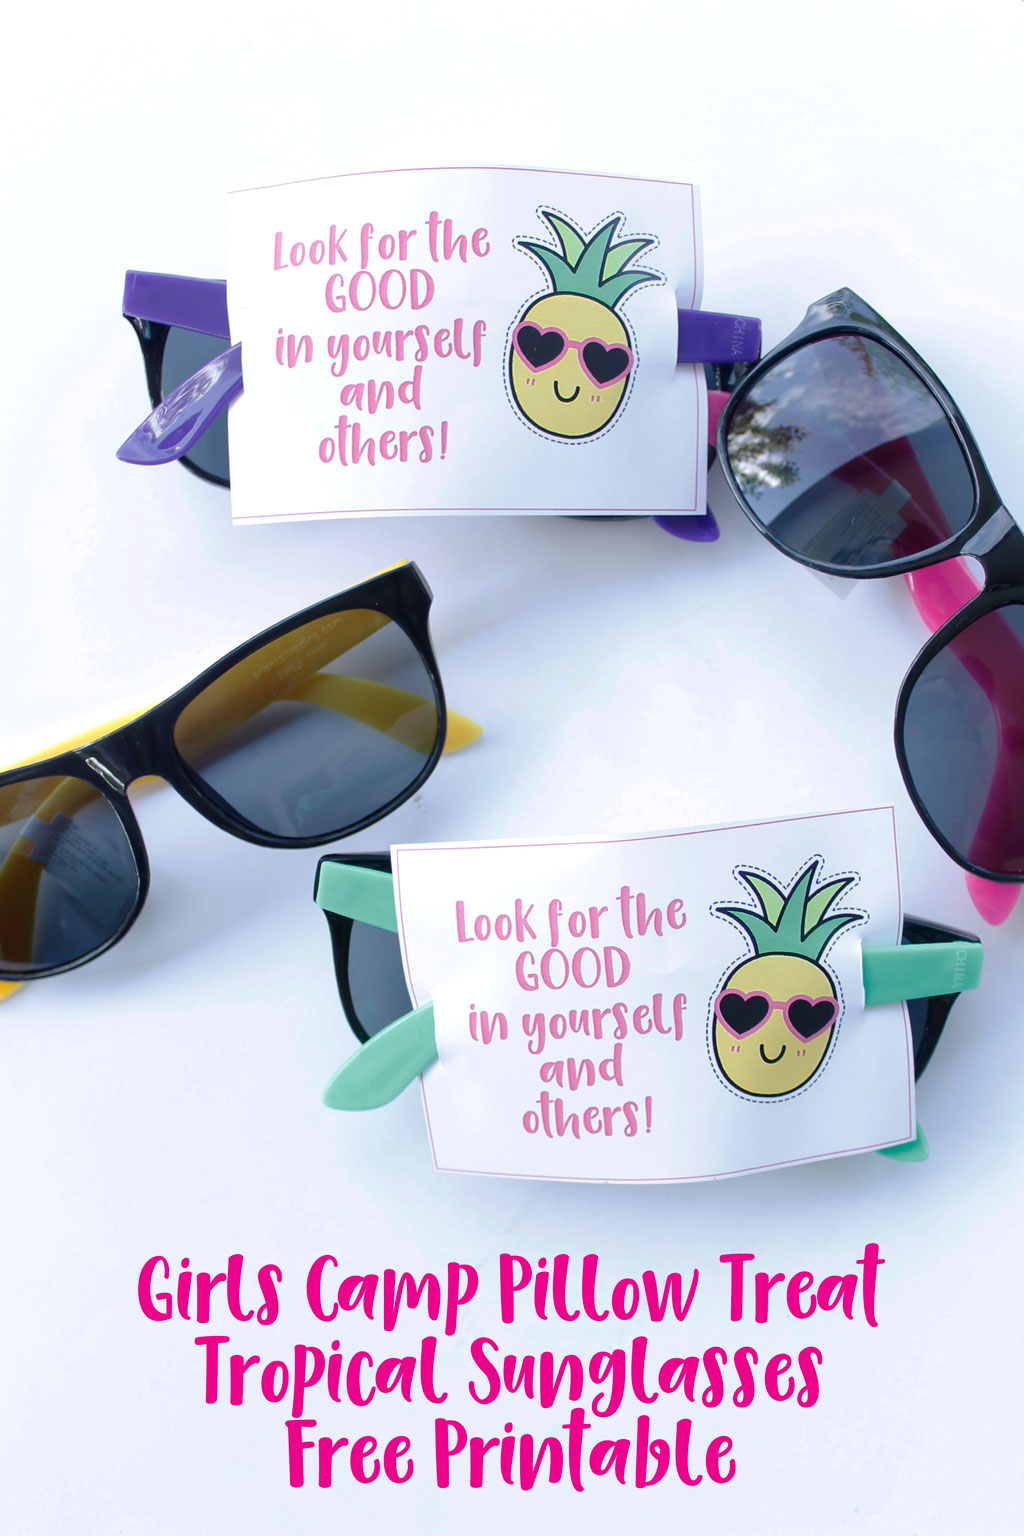 This Girls Camp Pillow Treat Tropical Sunglasses Free Printable is sure to be a hit with the young women in your group. #ldsgirlscamp #girlscamppillowtreat #girlscamptreat #girlscampprintables